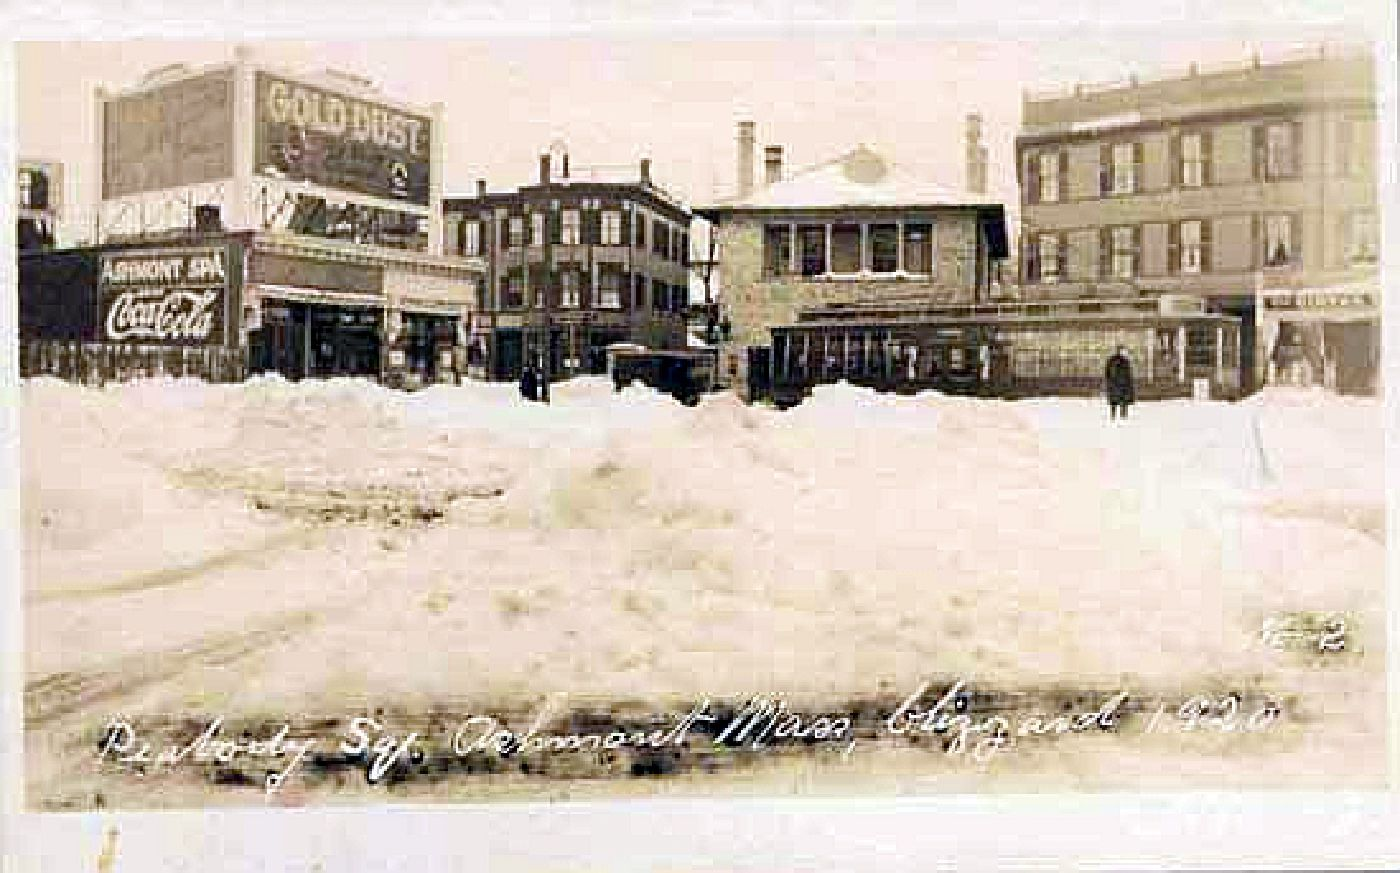 Peabody Sq. Ashmont, Mass., blizzard of 1920